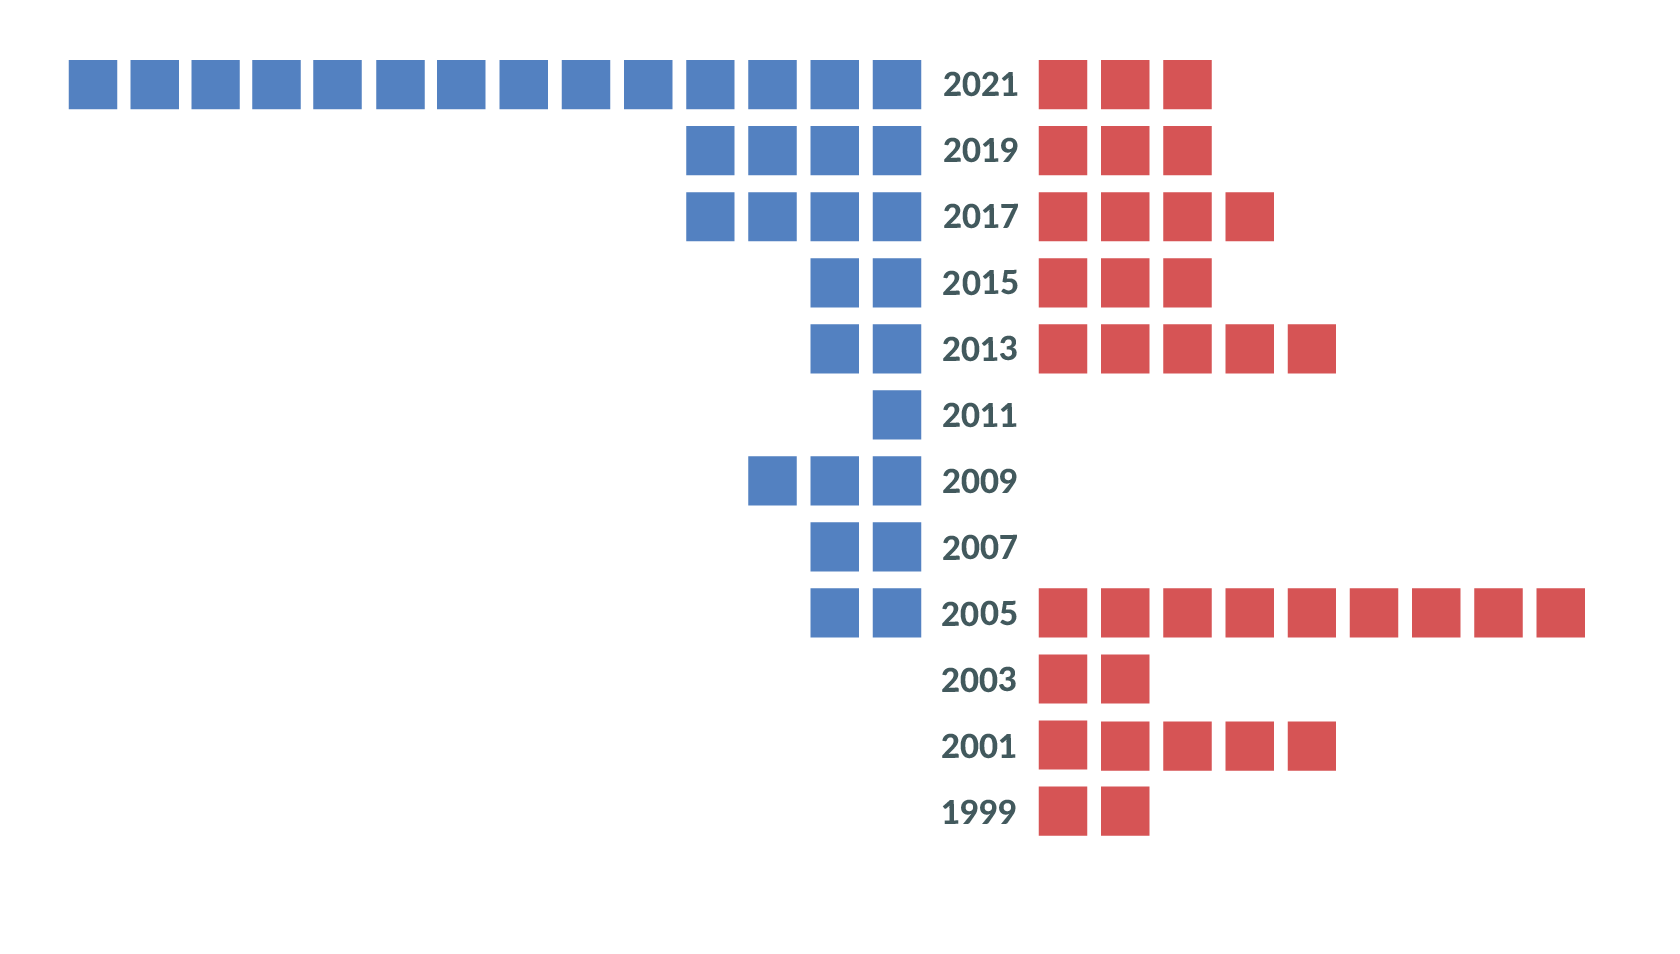 bar chart comparing number of democrats and republicans who faced a primary with sharp increase in democrats in 2021